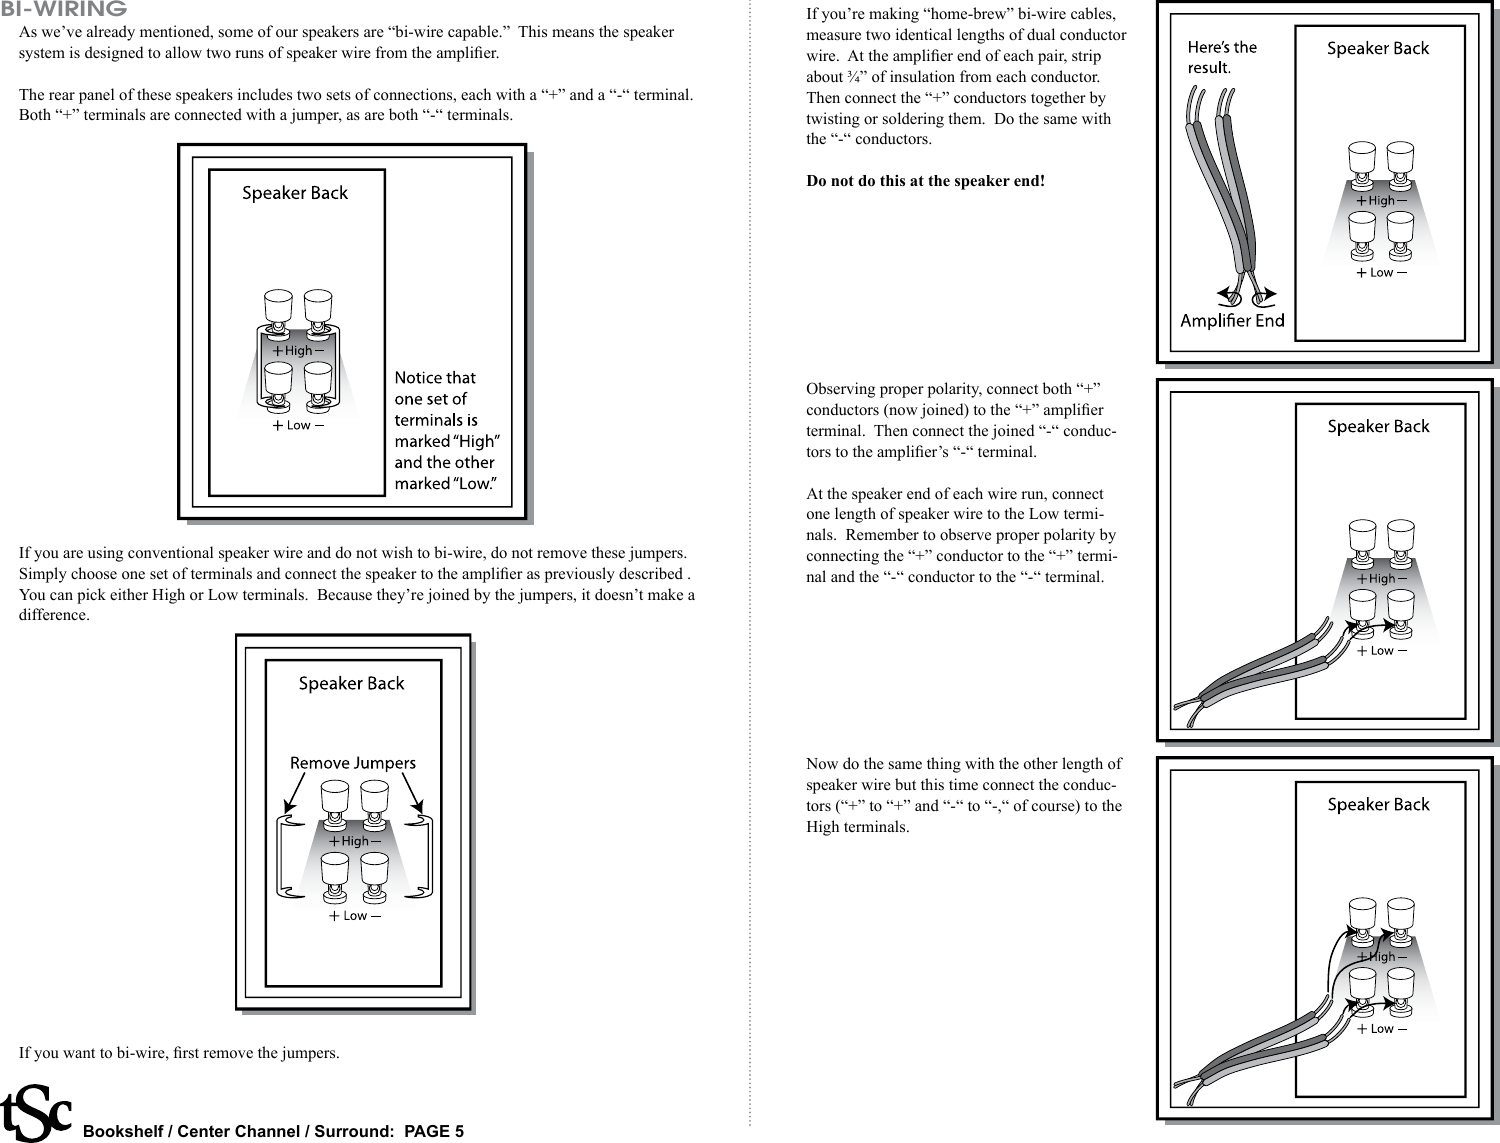 The Speaker Company Bookshelf Center Channel Surround Speakers Users How To Wire Together Page 5 Of 6